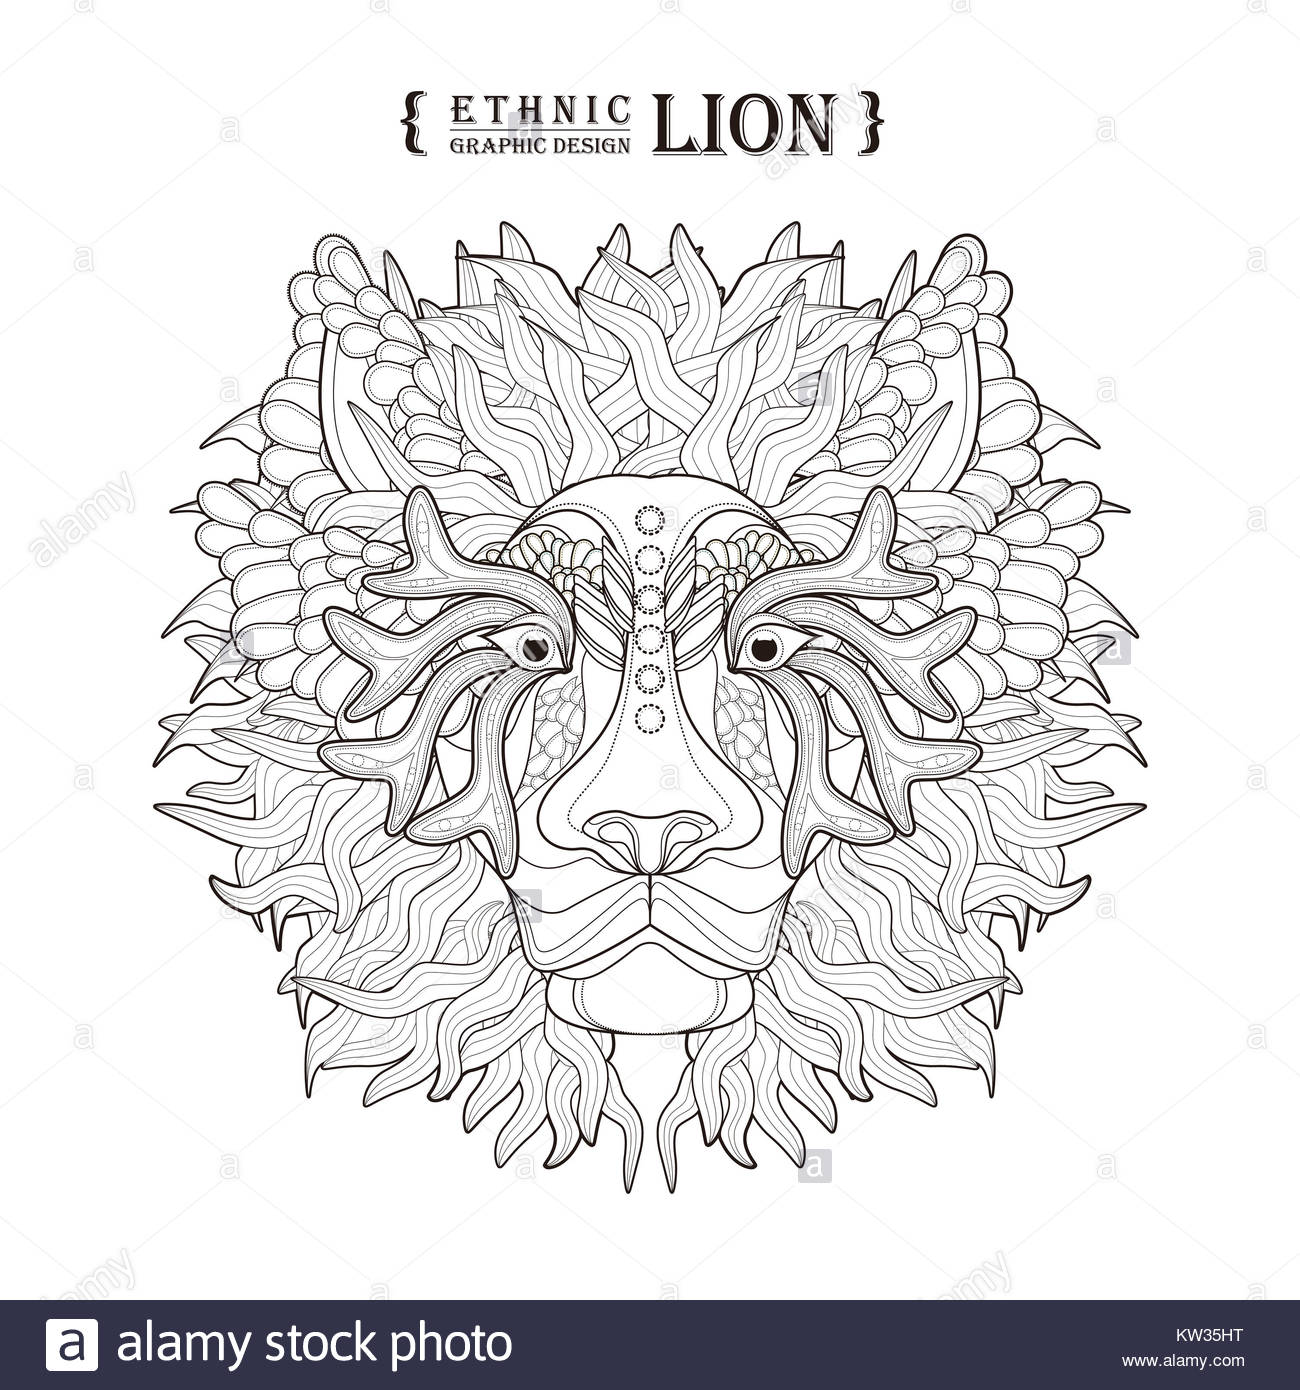 lion head coloring page in exquisite style Stock Photo: 170329988 ...